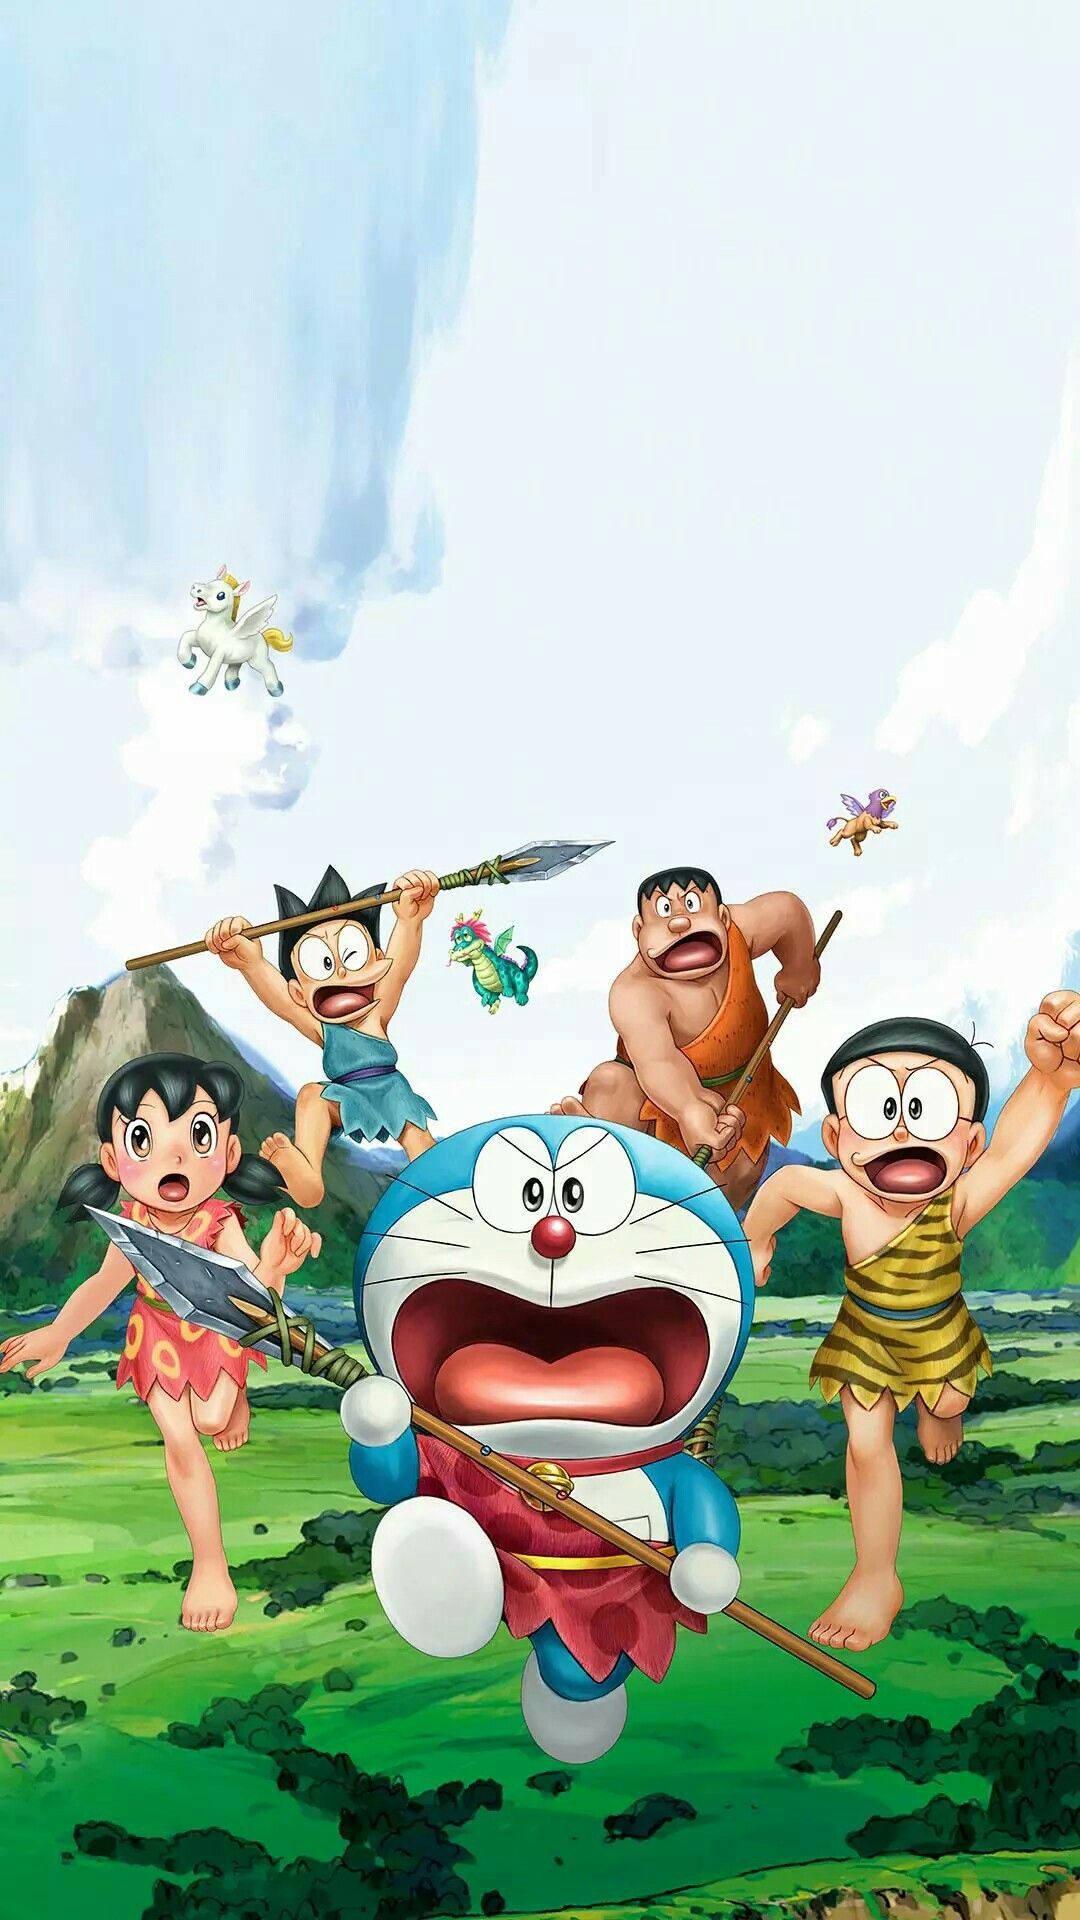 Doraemon Doraemon Pinterest Doraemon Doraemon Cartoon And